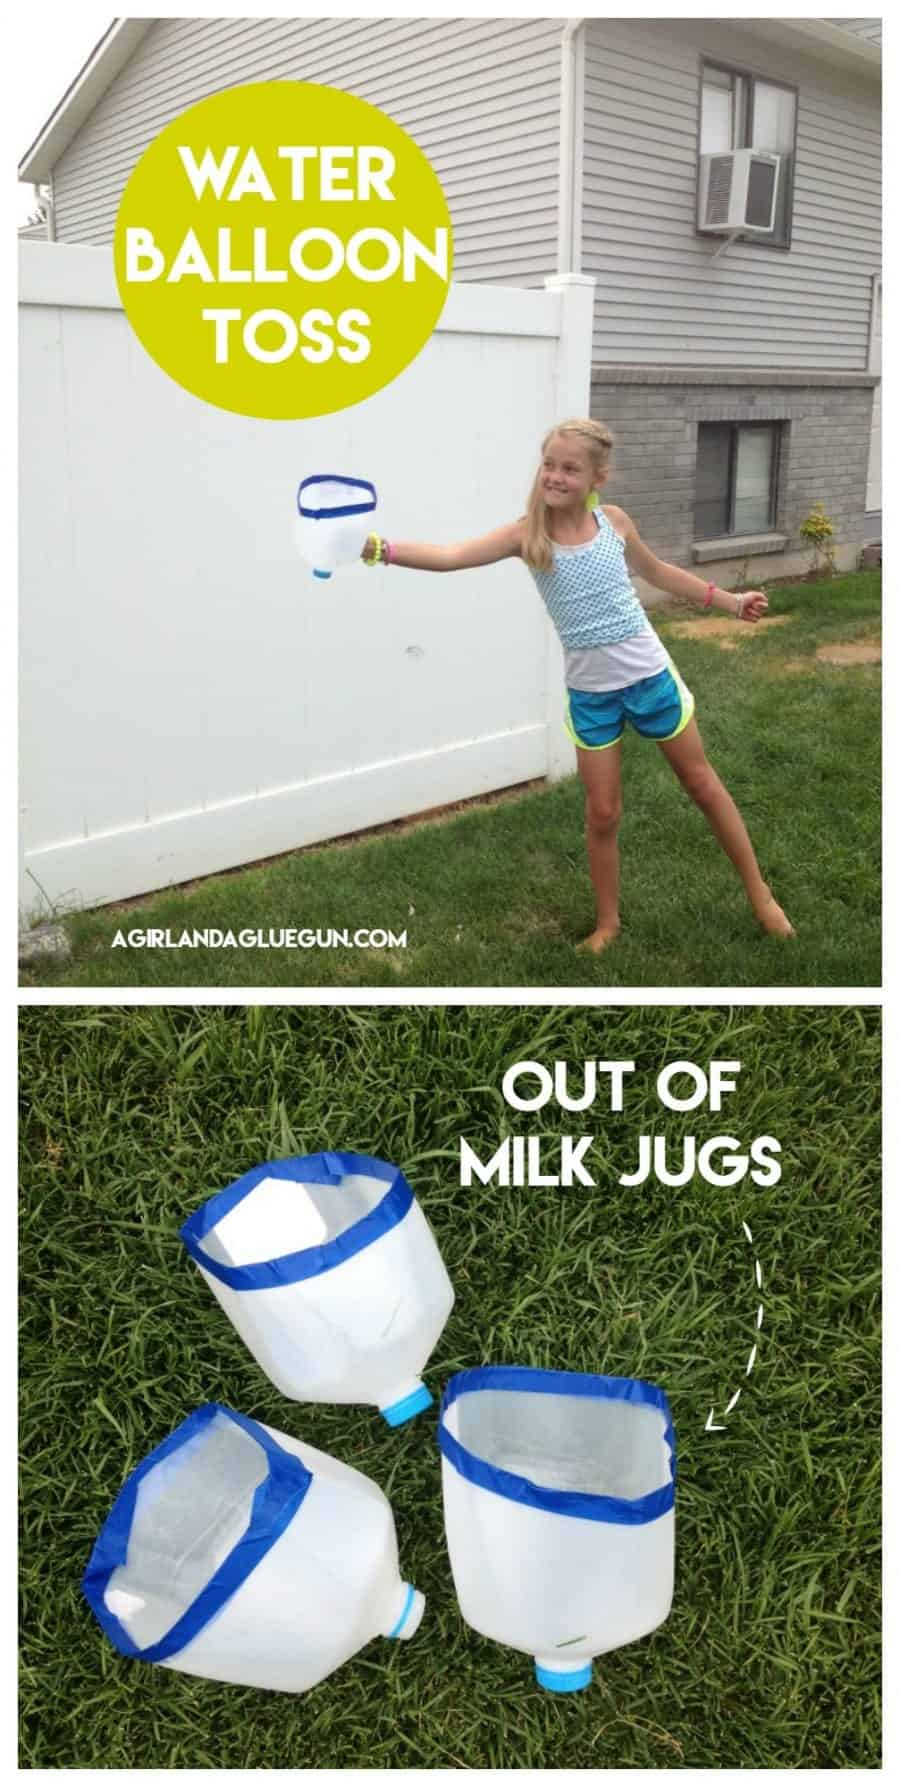 water balloon toss out of milk jugs